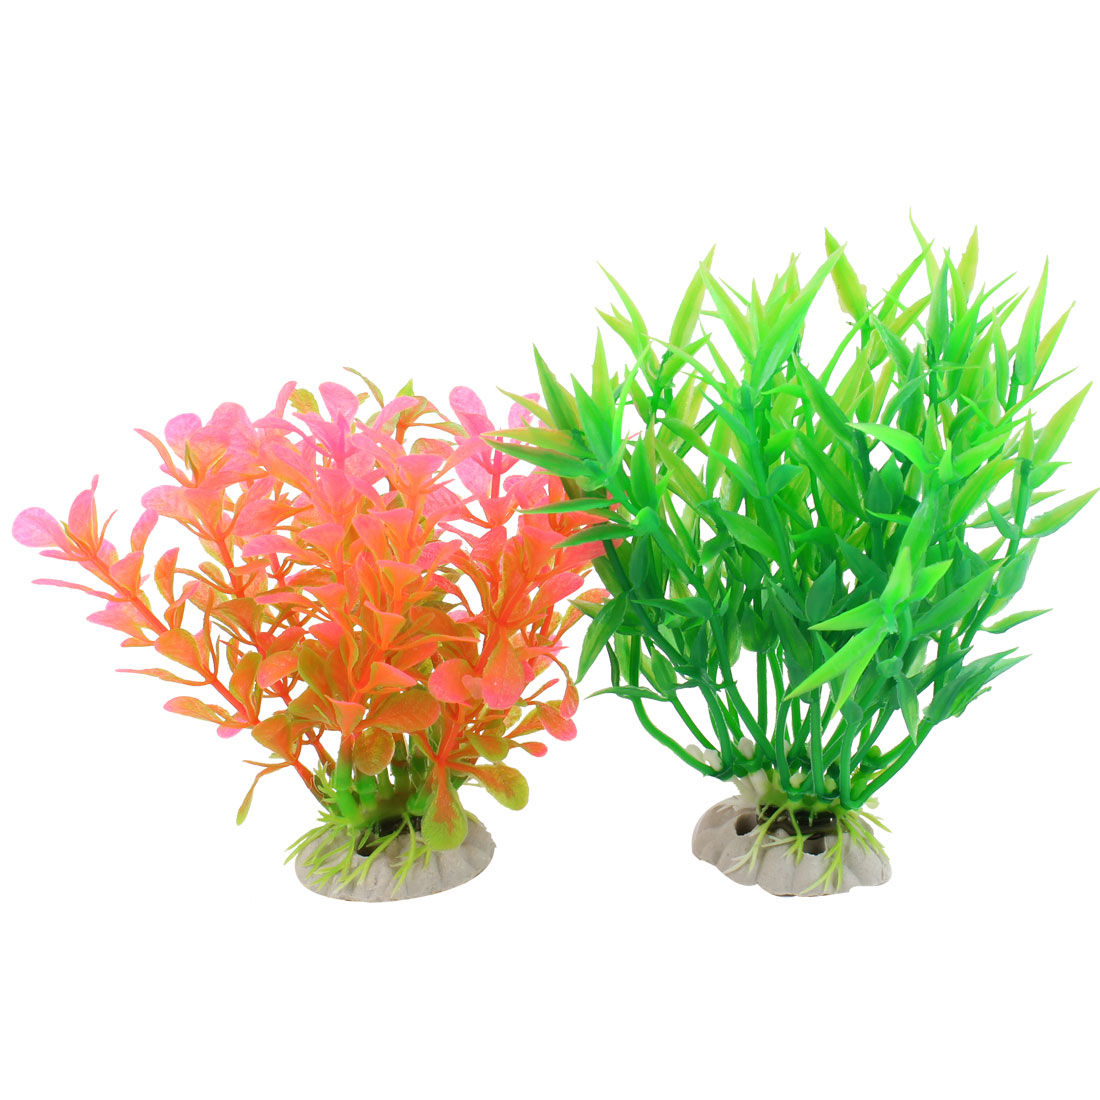 Aquarium Ornament Green Pink Artifical Underwater Plants Grass 2 Pcs